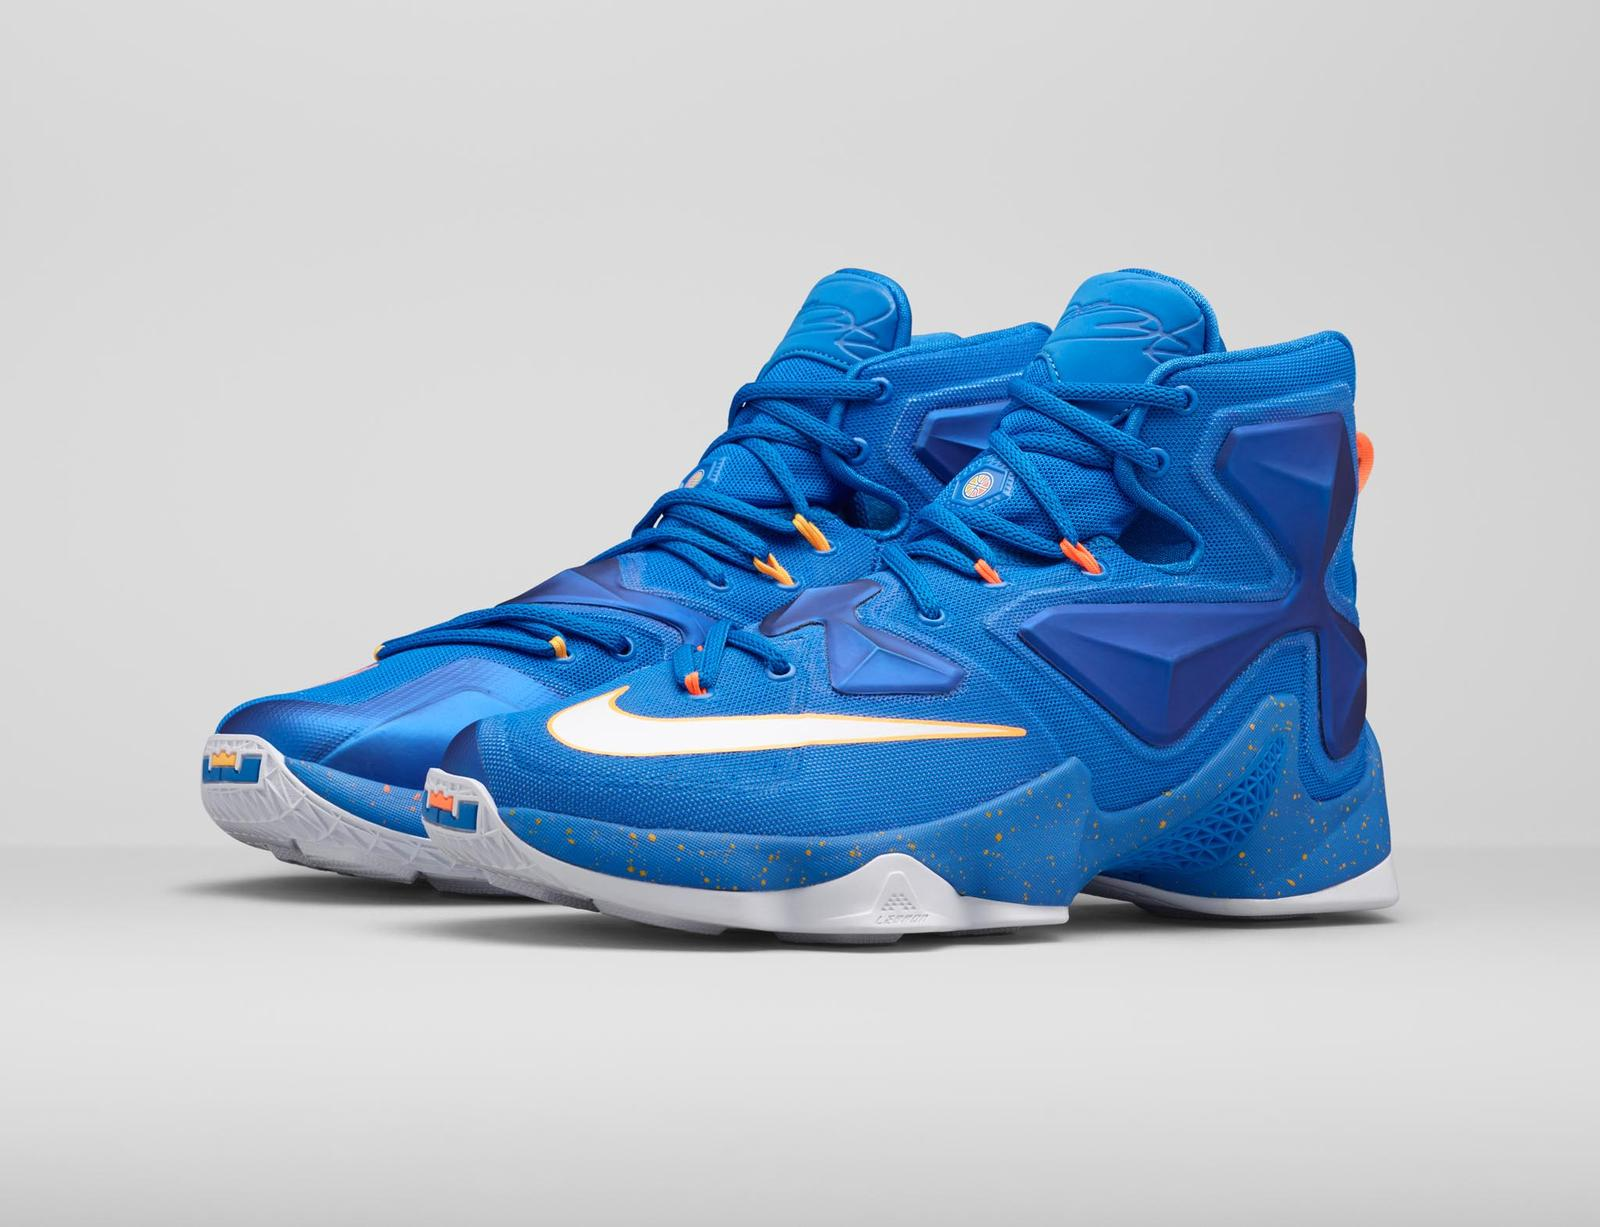 online retailer 46e14 5a1ee shop nike lebron 13 sky blue white silverair basketball basketball shoes  for salereliable 9140f f7a1c  where can i buy introducing the lebron 13  balance ...